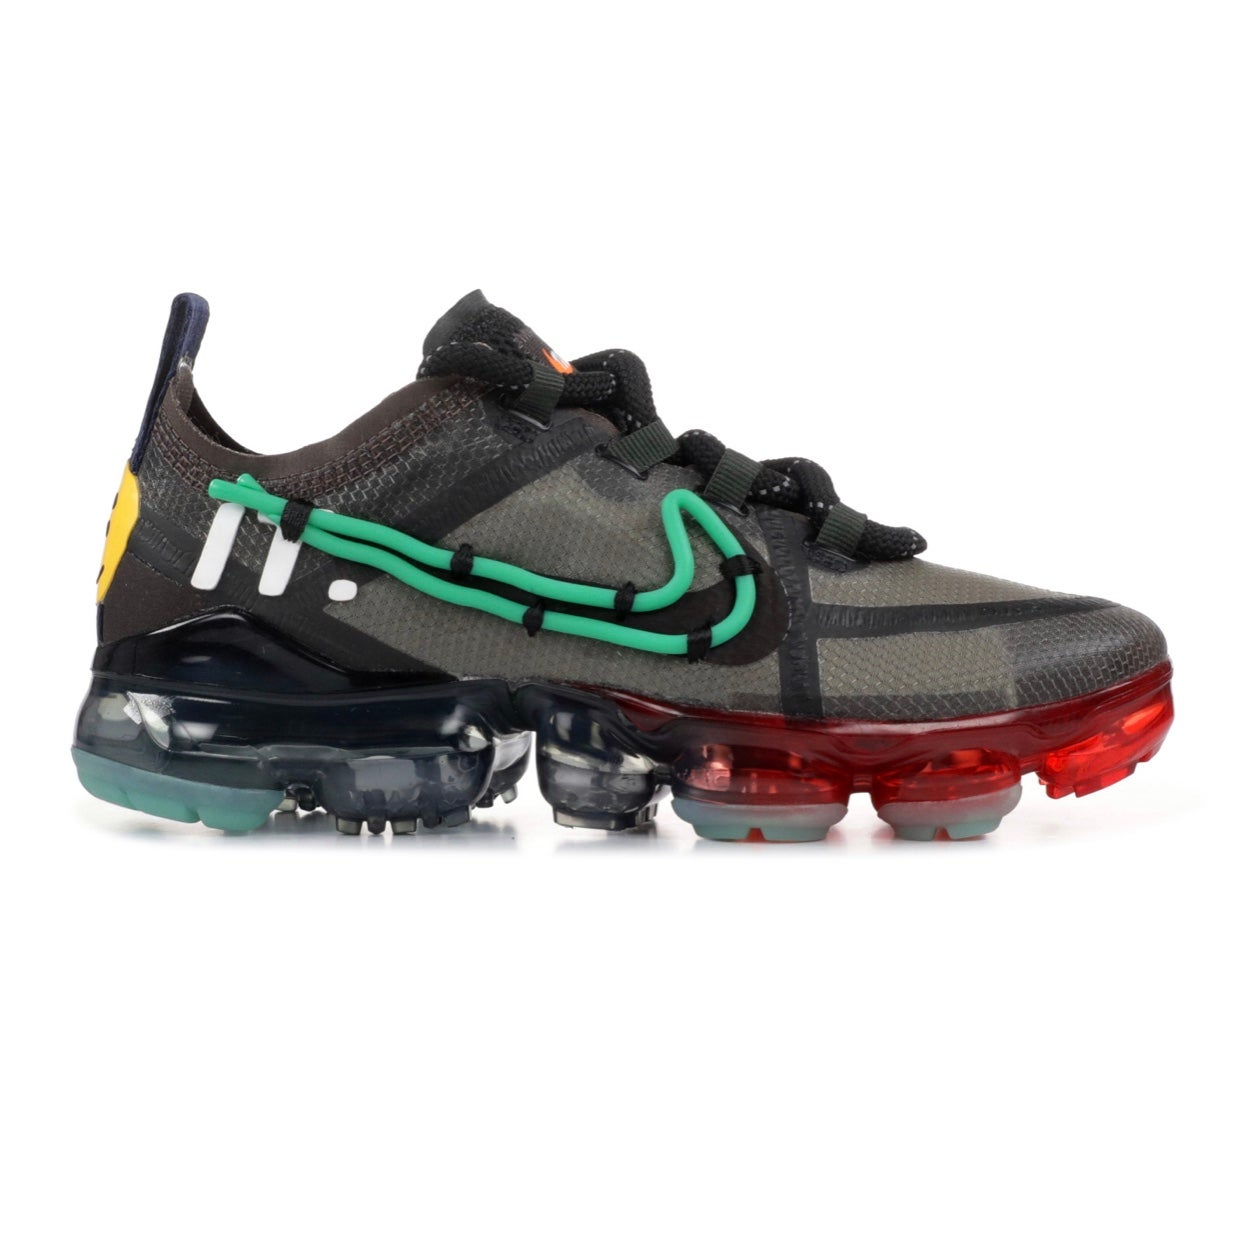 CPFM Vapormax size 5, 8, 10.5 | The